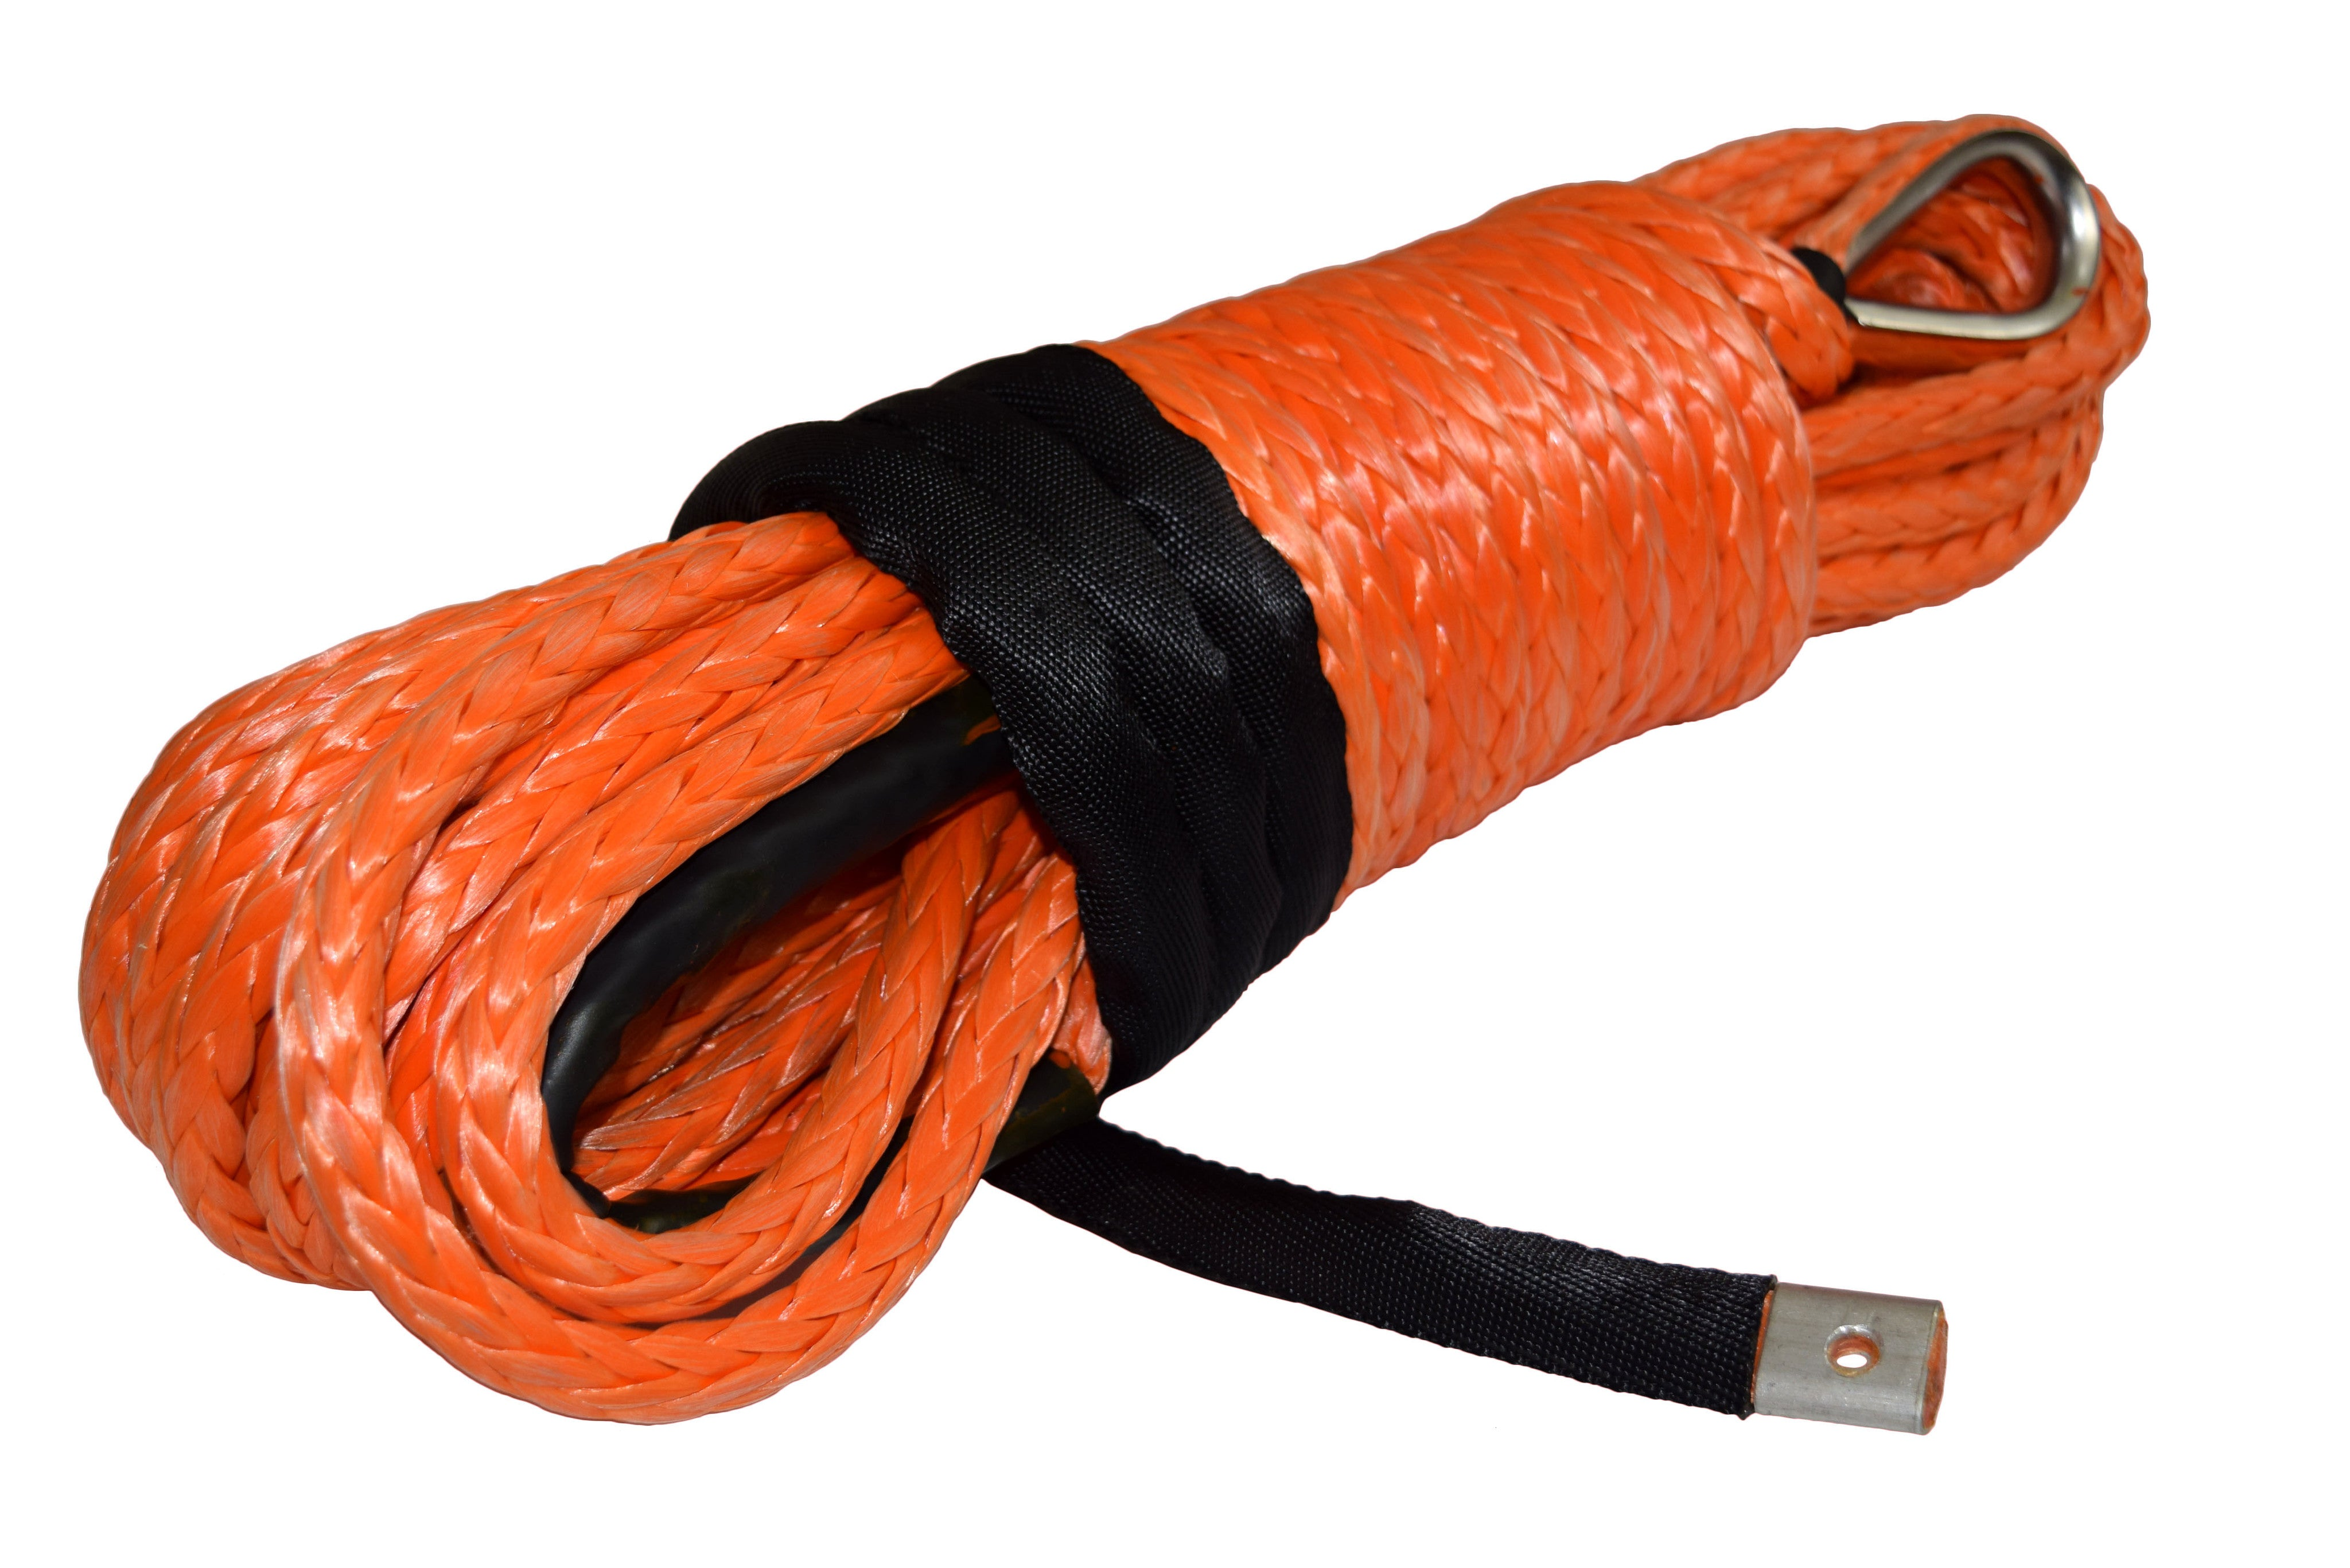 QIQU orange 100 ft 1/2 inch SUV Off-road car synthetic winch cable rope line with thimble and lug